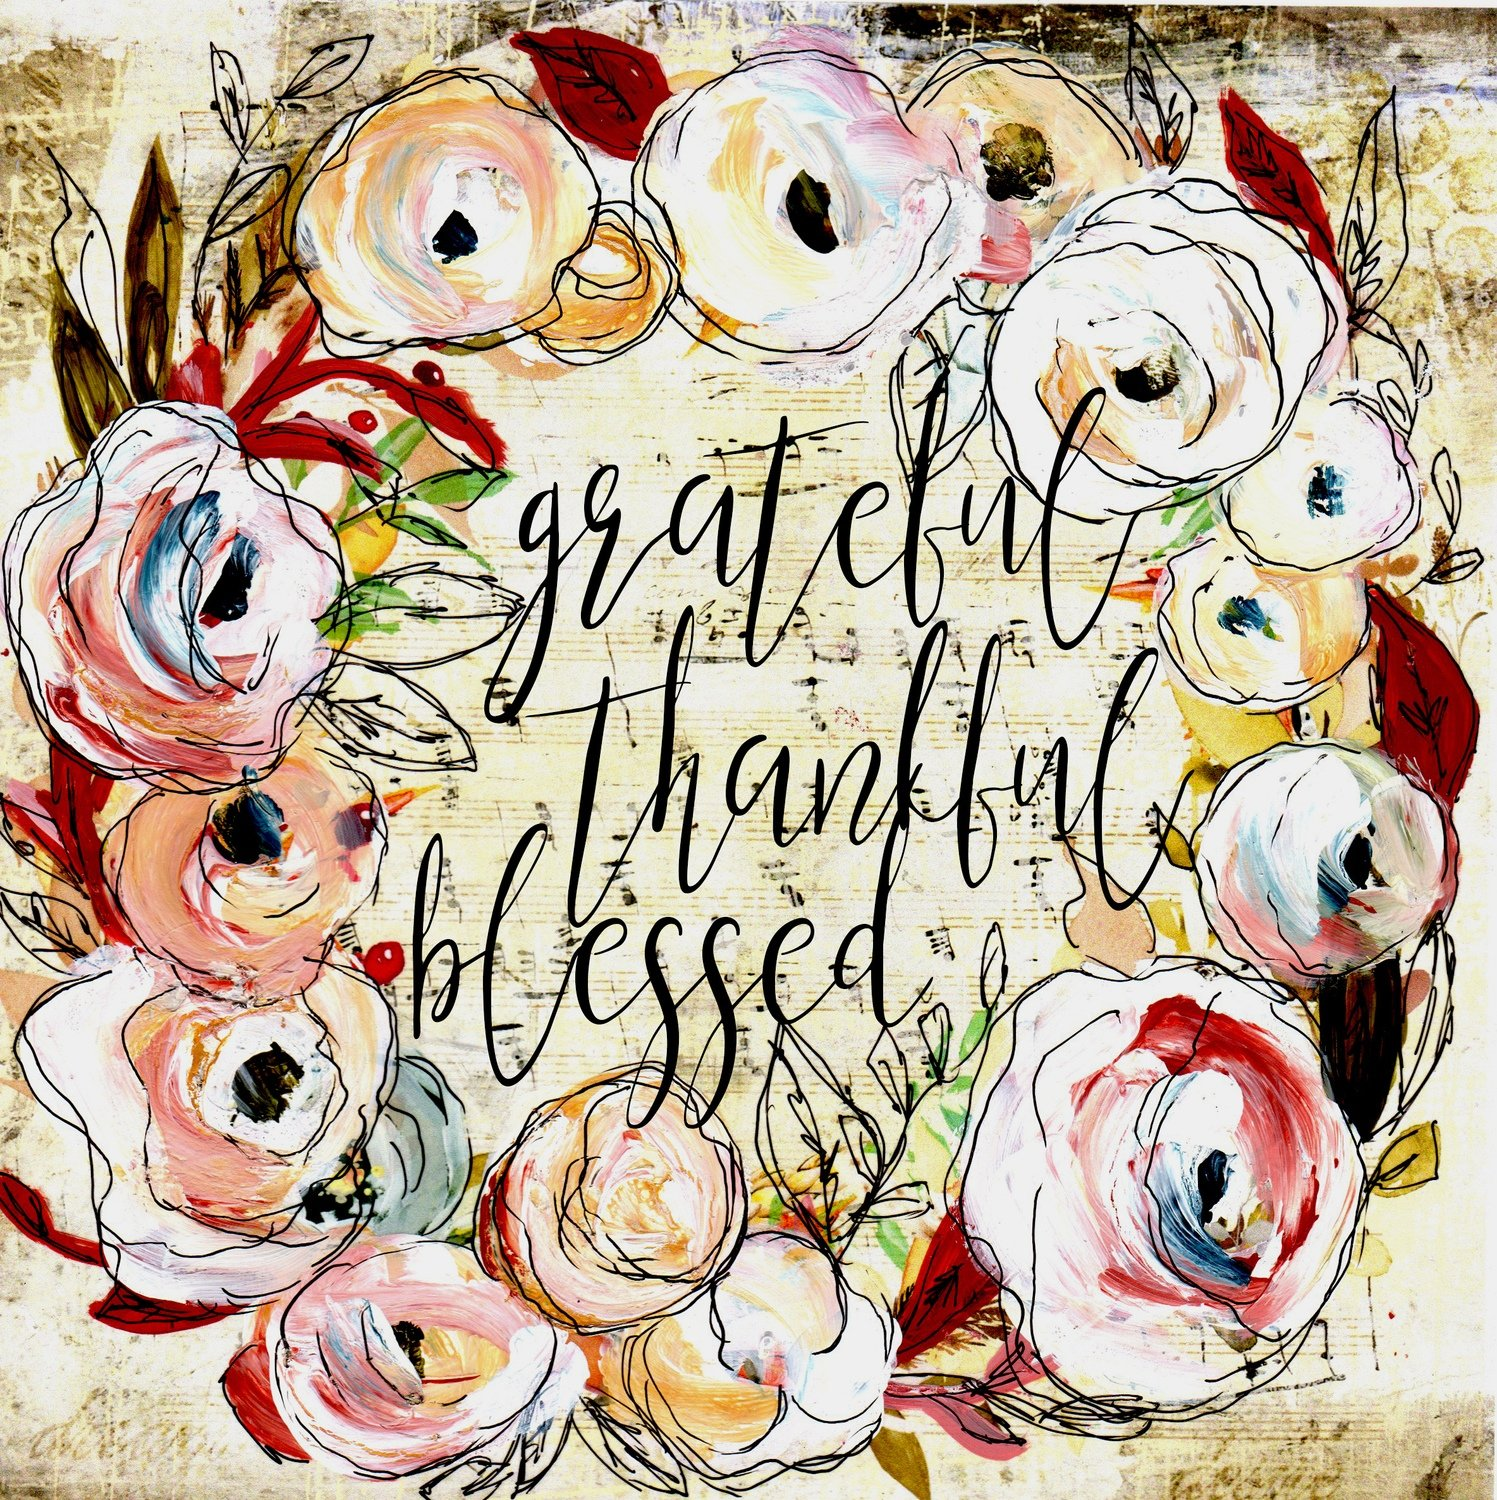 """Grateful Thankful Blessed"" wreathe"